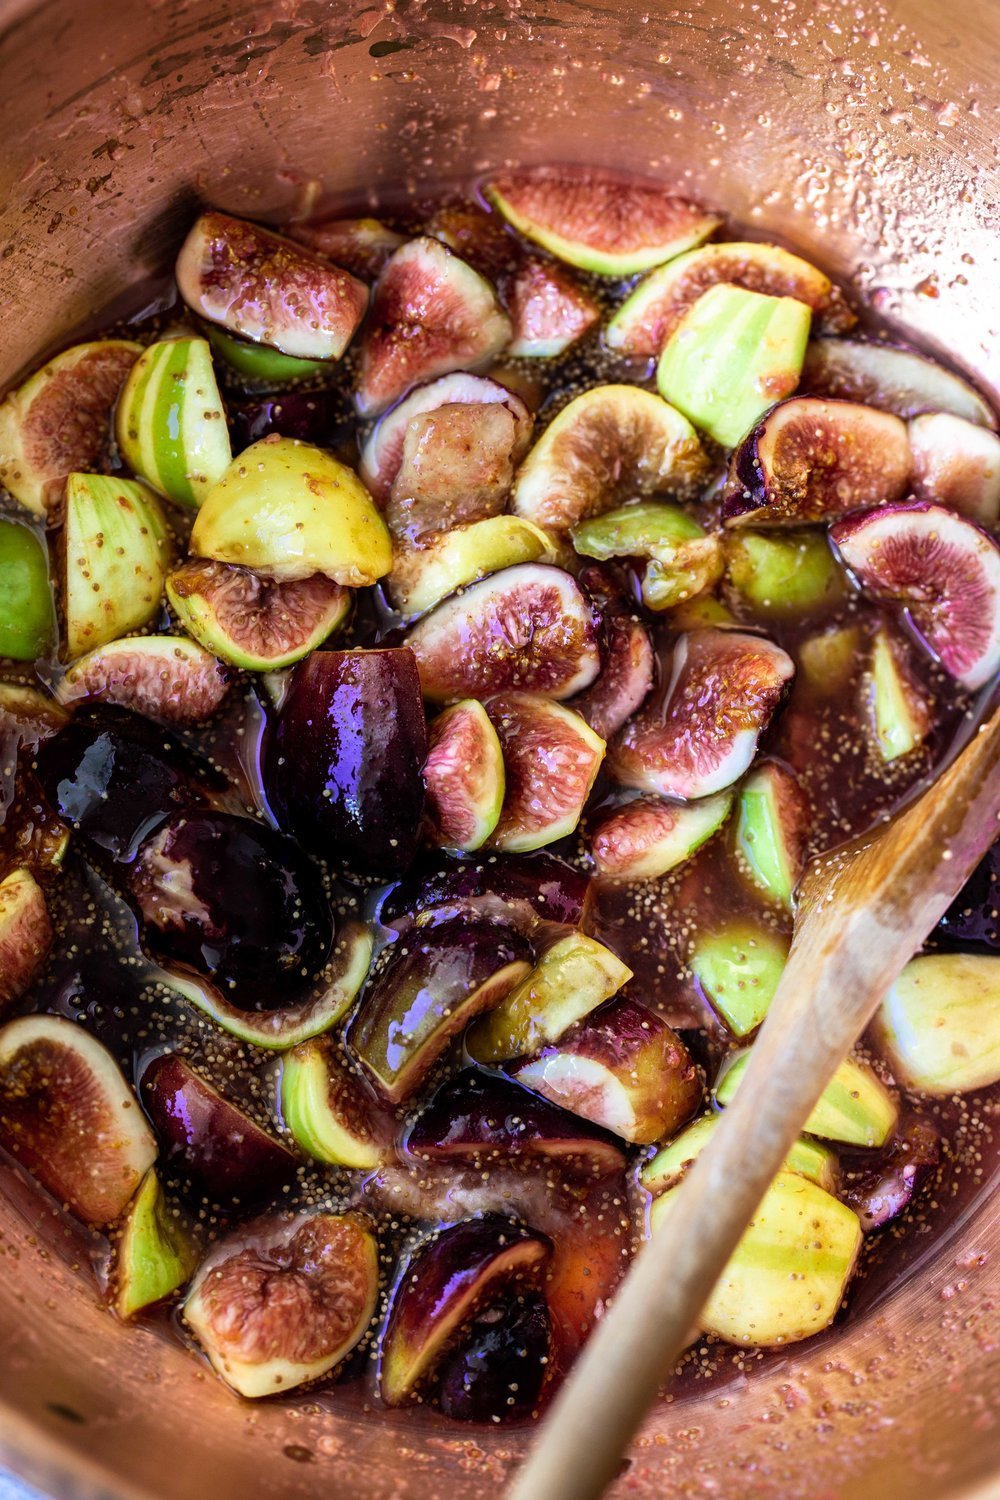 macerated figs for jam with cinnamon and black peppercorns